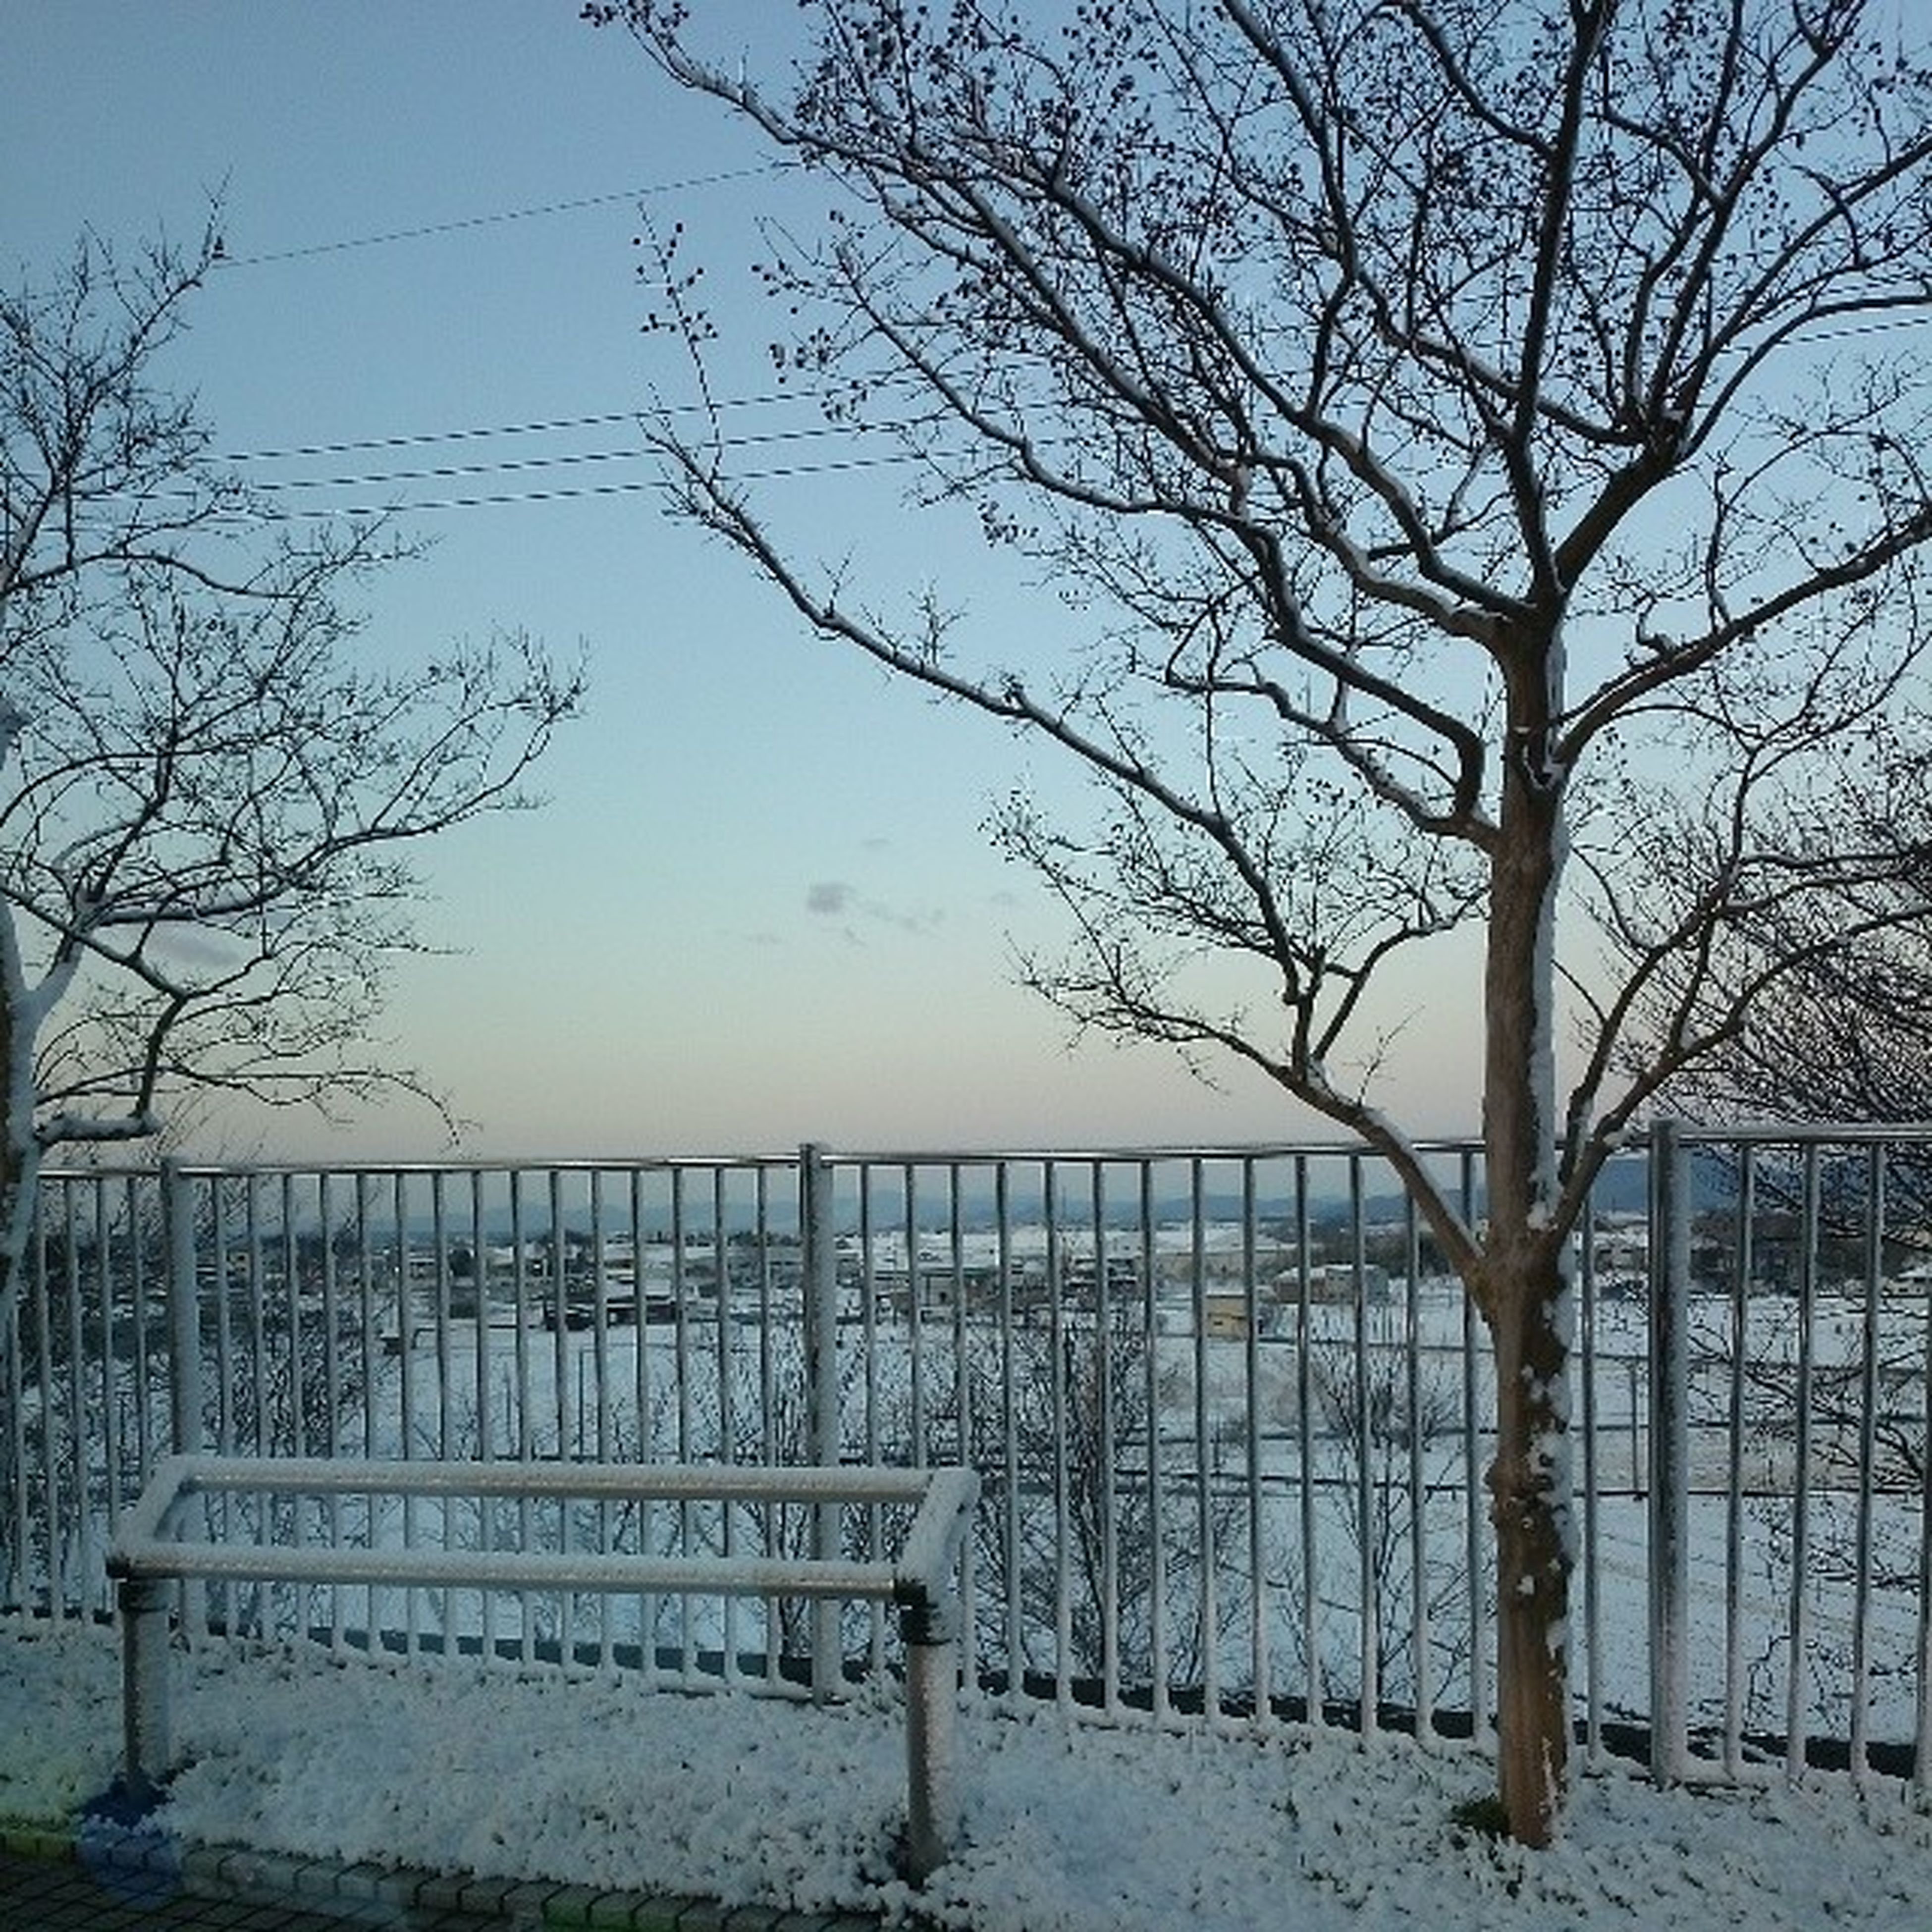 bare tree, fence, tree, railing, winter, sky, branch, cold temperature, tranquility, snow, tranquil scene, nature, protection, scenics, built structure, safety, season, landscape, beauty in nature, weather